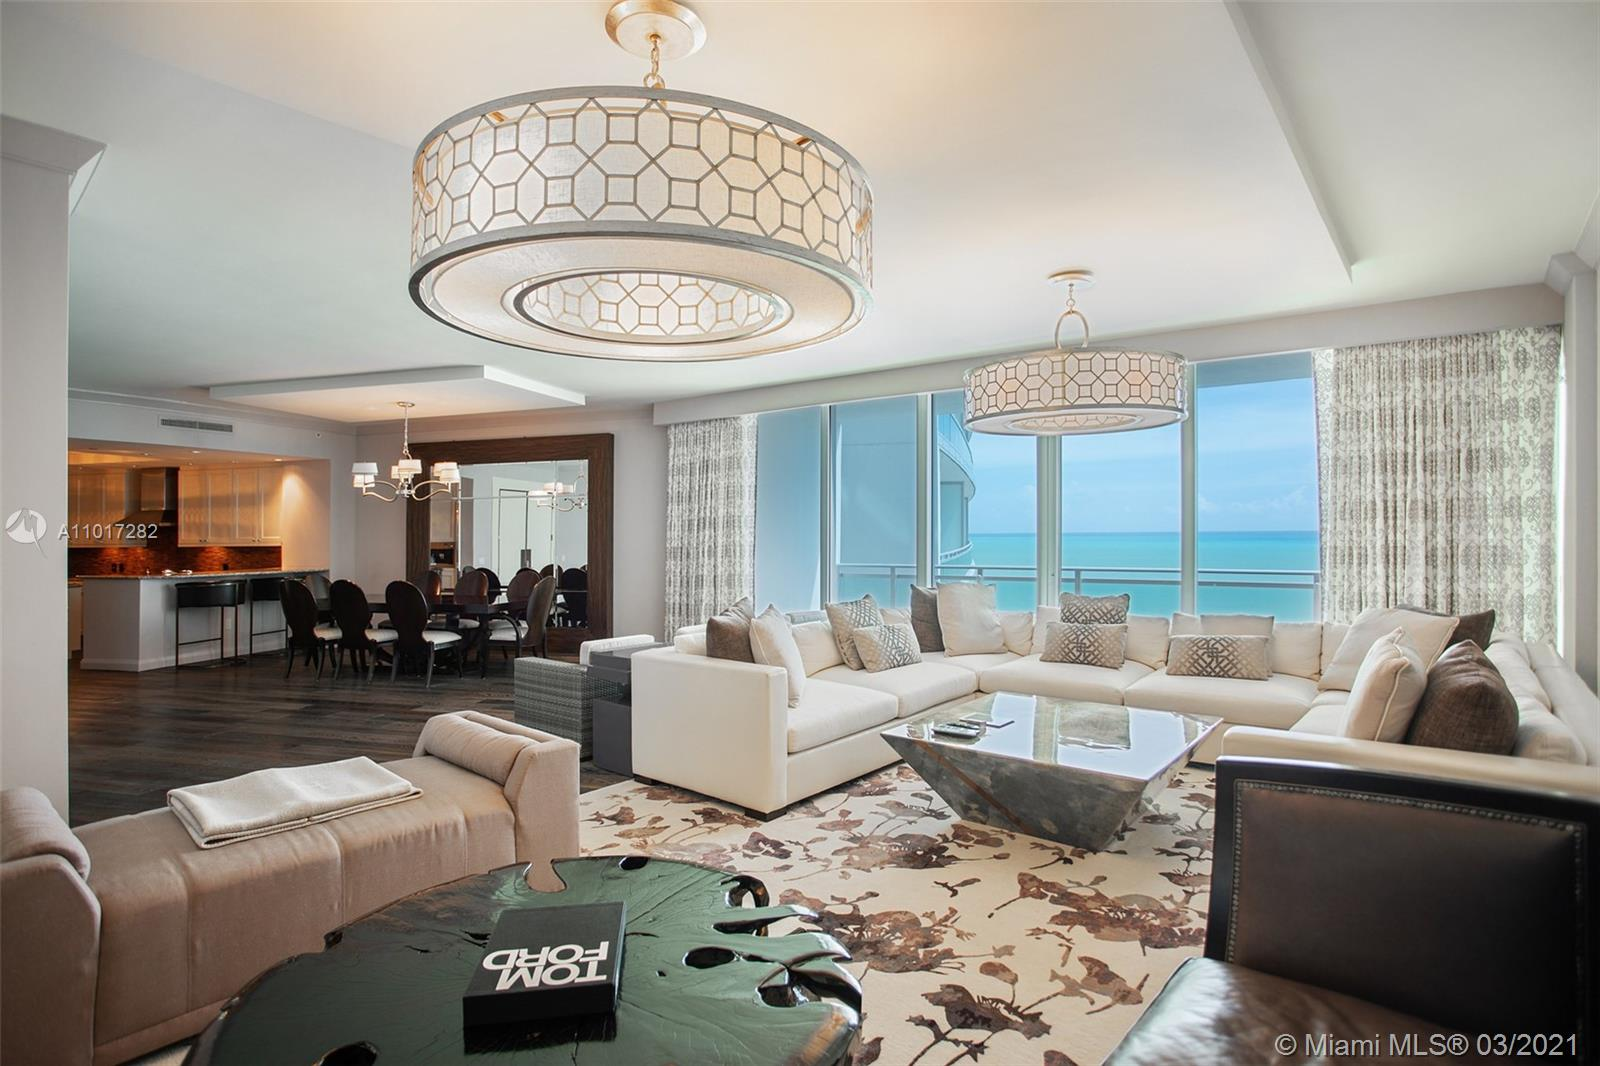 10295 Collins Ave, Unit #1203 Luxury Real Estate